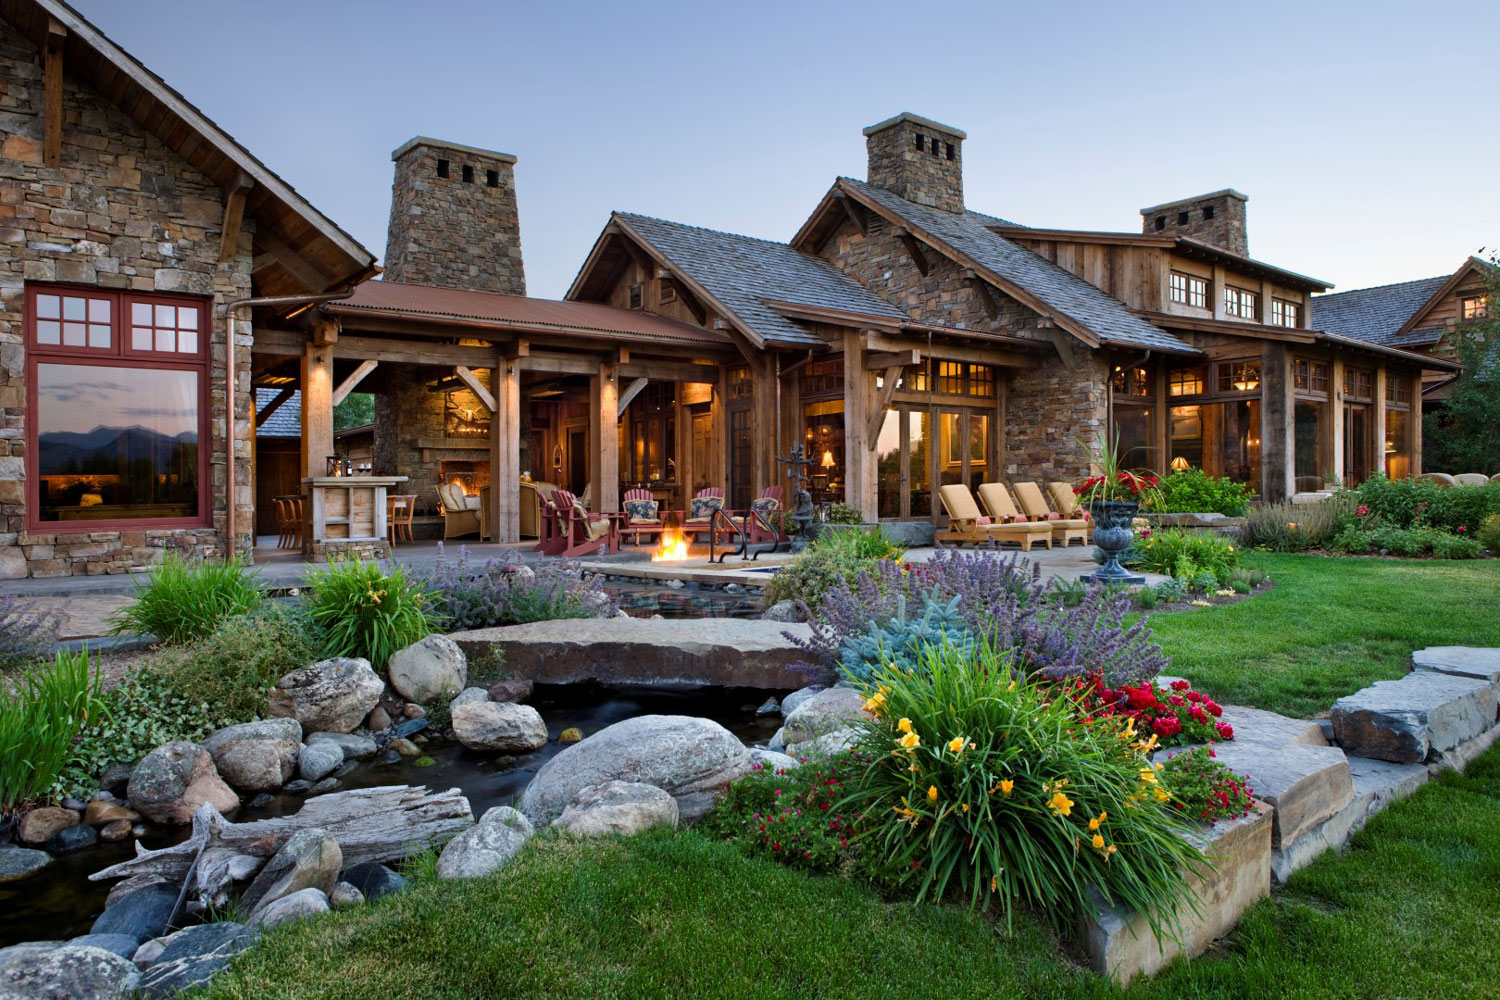 Award-winning architect Jerry Locati's holistic architecture comes to life in this luxury compound at the base of the Bridger Mountain in Bozeman, Montana.